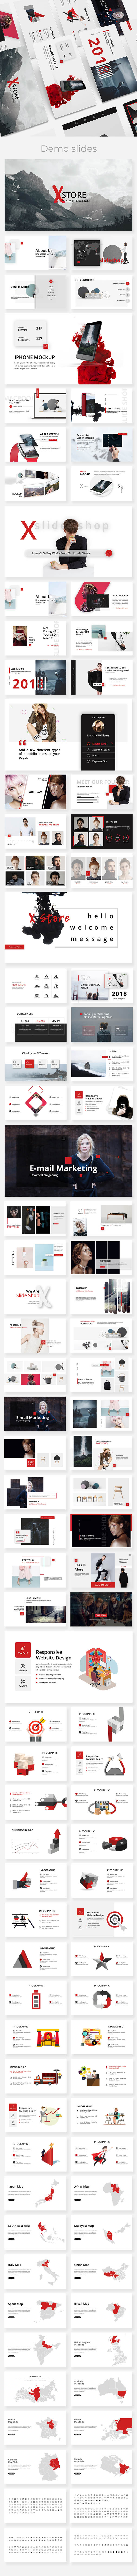 Xstore Minimal Google Slide Template - Google Slides Presentation Templates